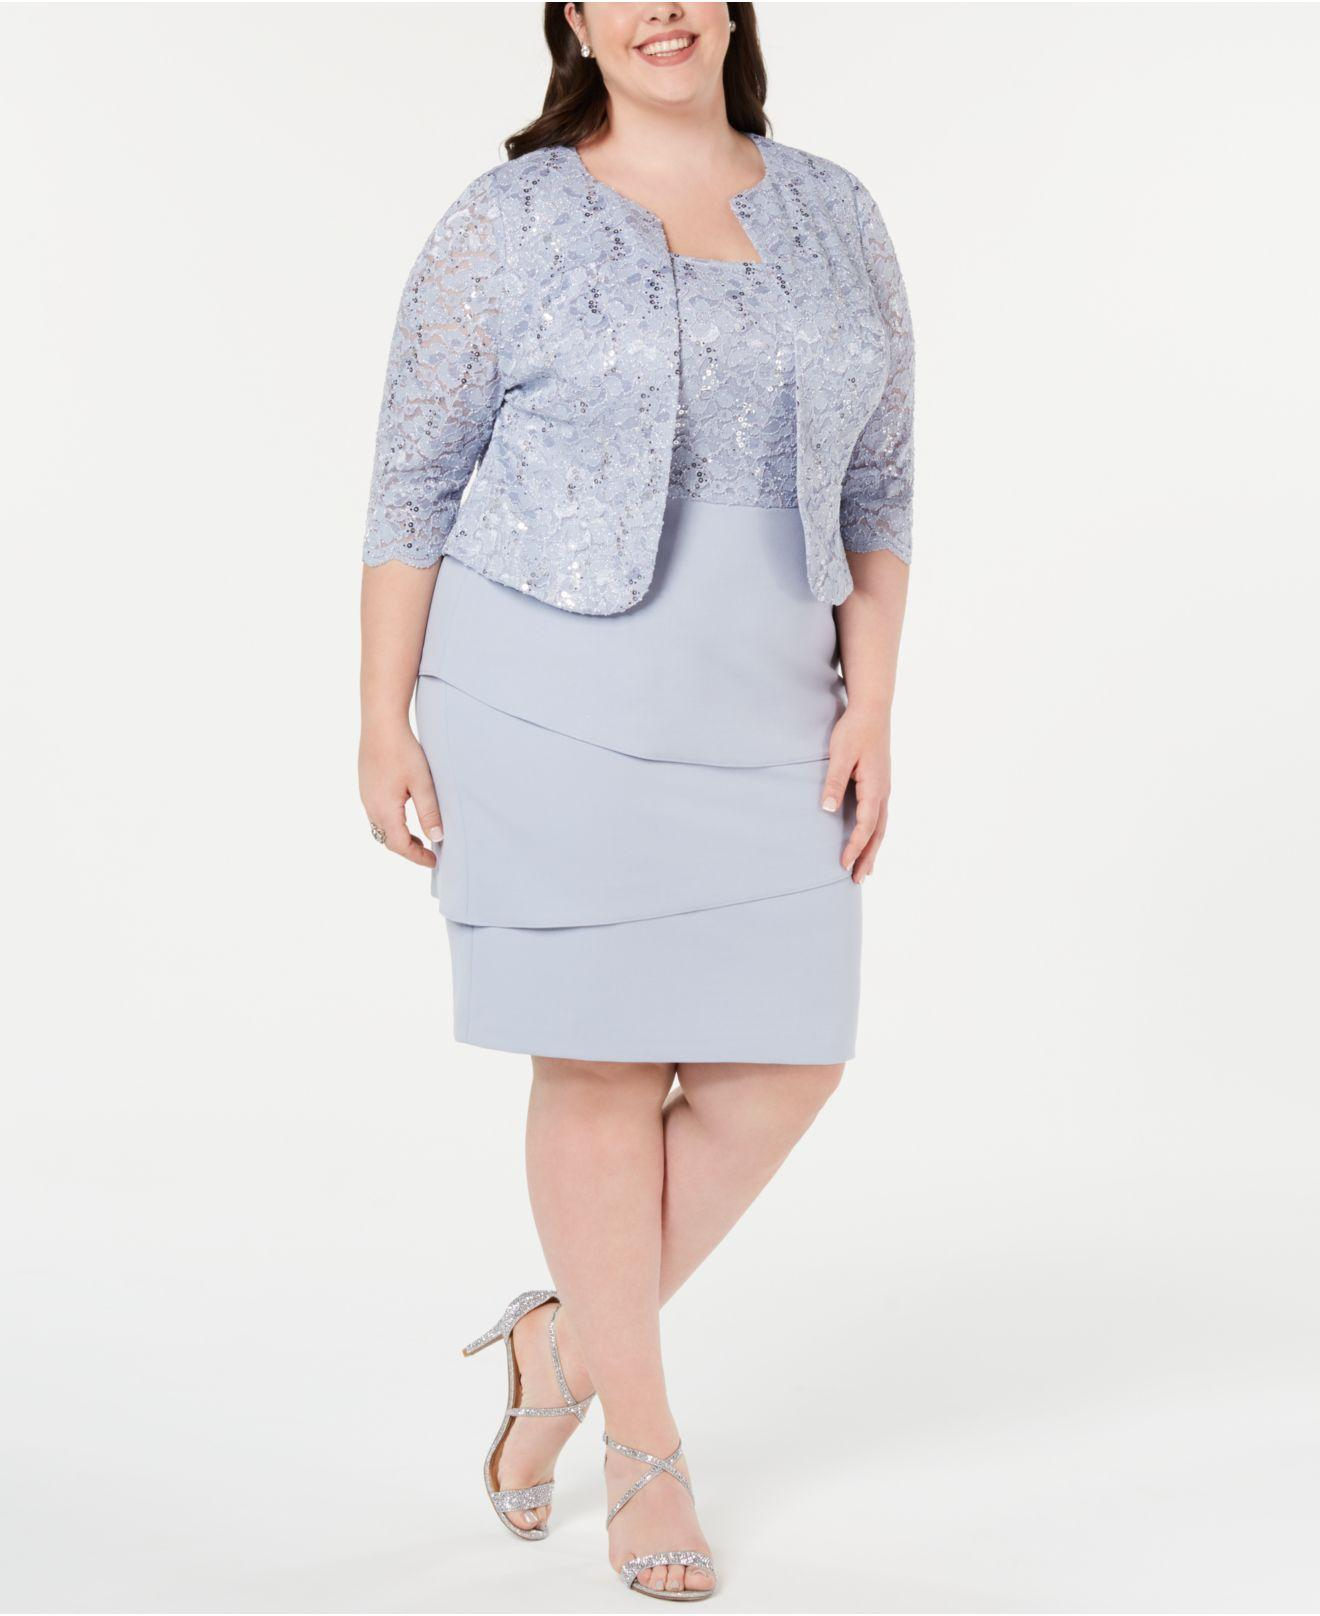 5bc8219d321 Lyst - Alex Evenings Plus Size Sequined Lace Jacket   Shift Dress in ...